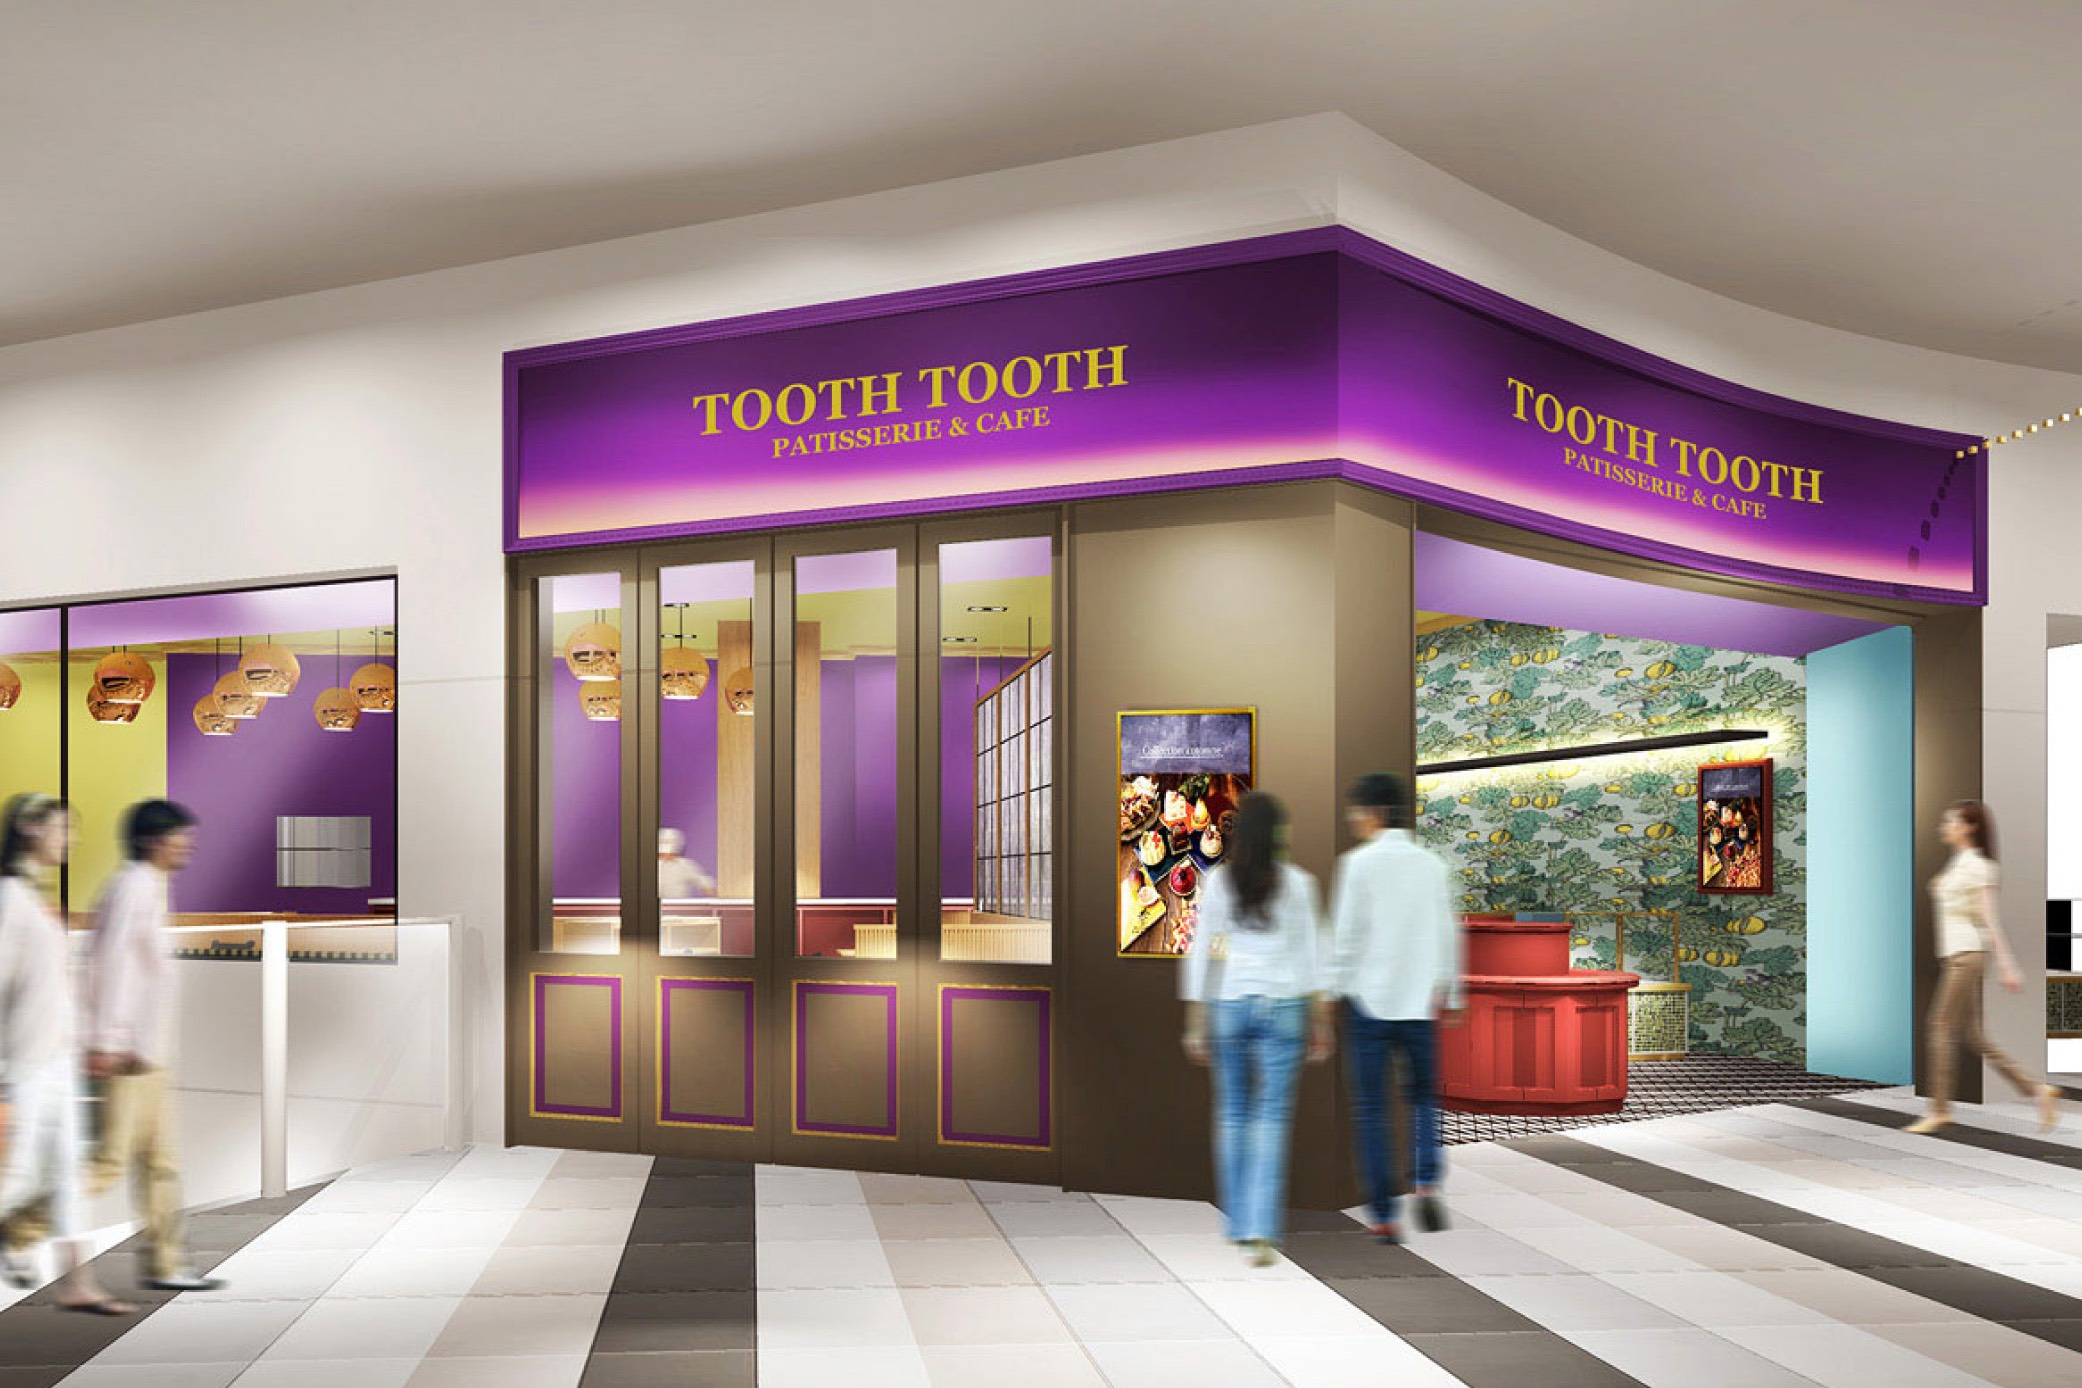 TOOTH TOOTH PATISSERIE&CAFE 阪急西宮ガーデンズ店 店舗イメージ